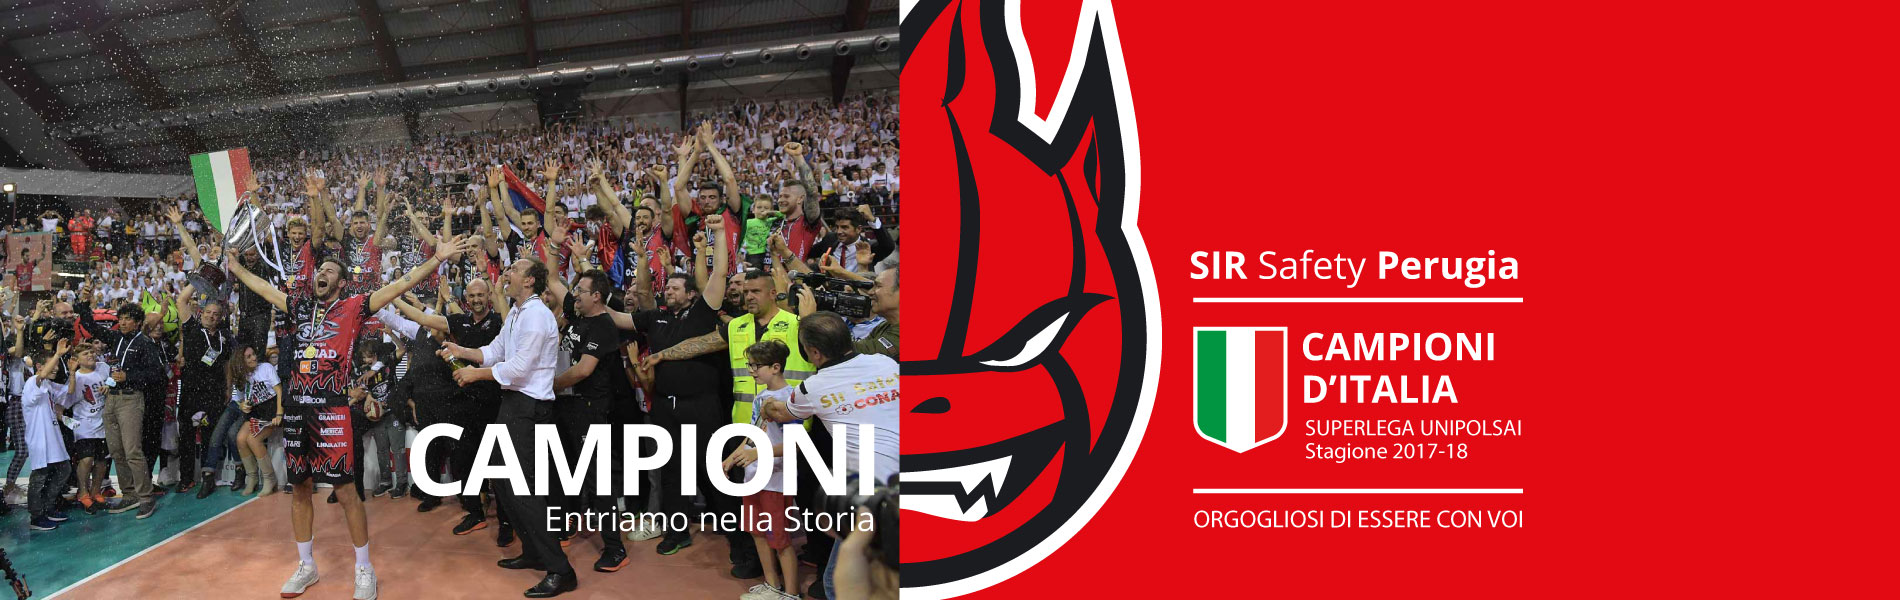 Campioni_ditalia-SIR-PCS PCS Group - Professional Computing Solutions